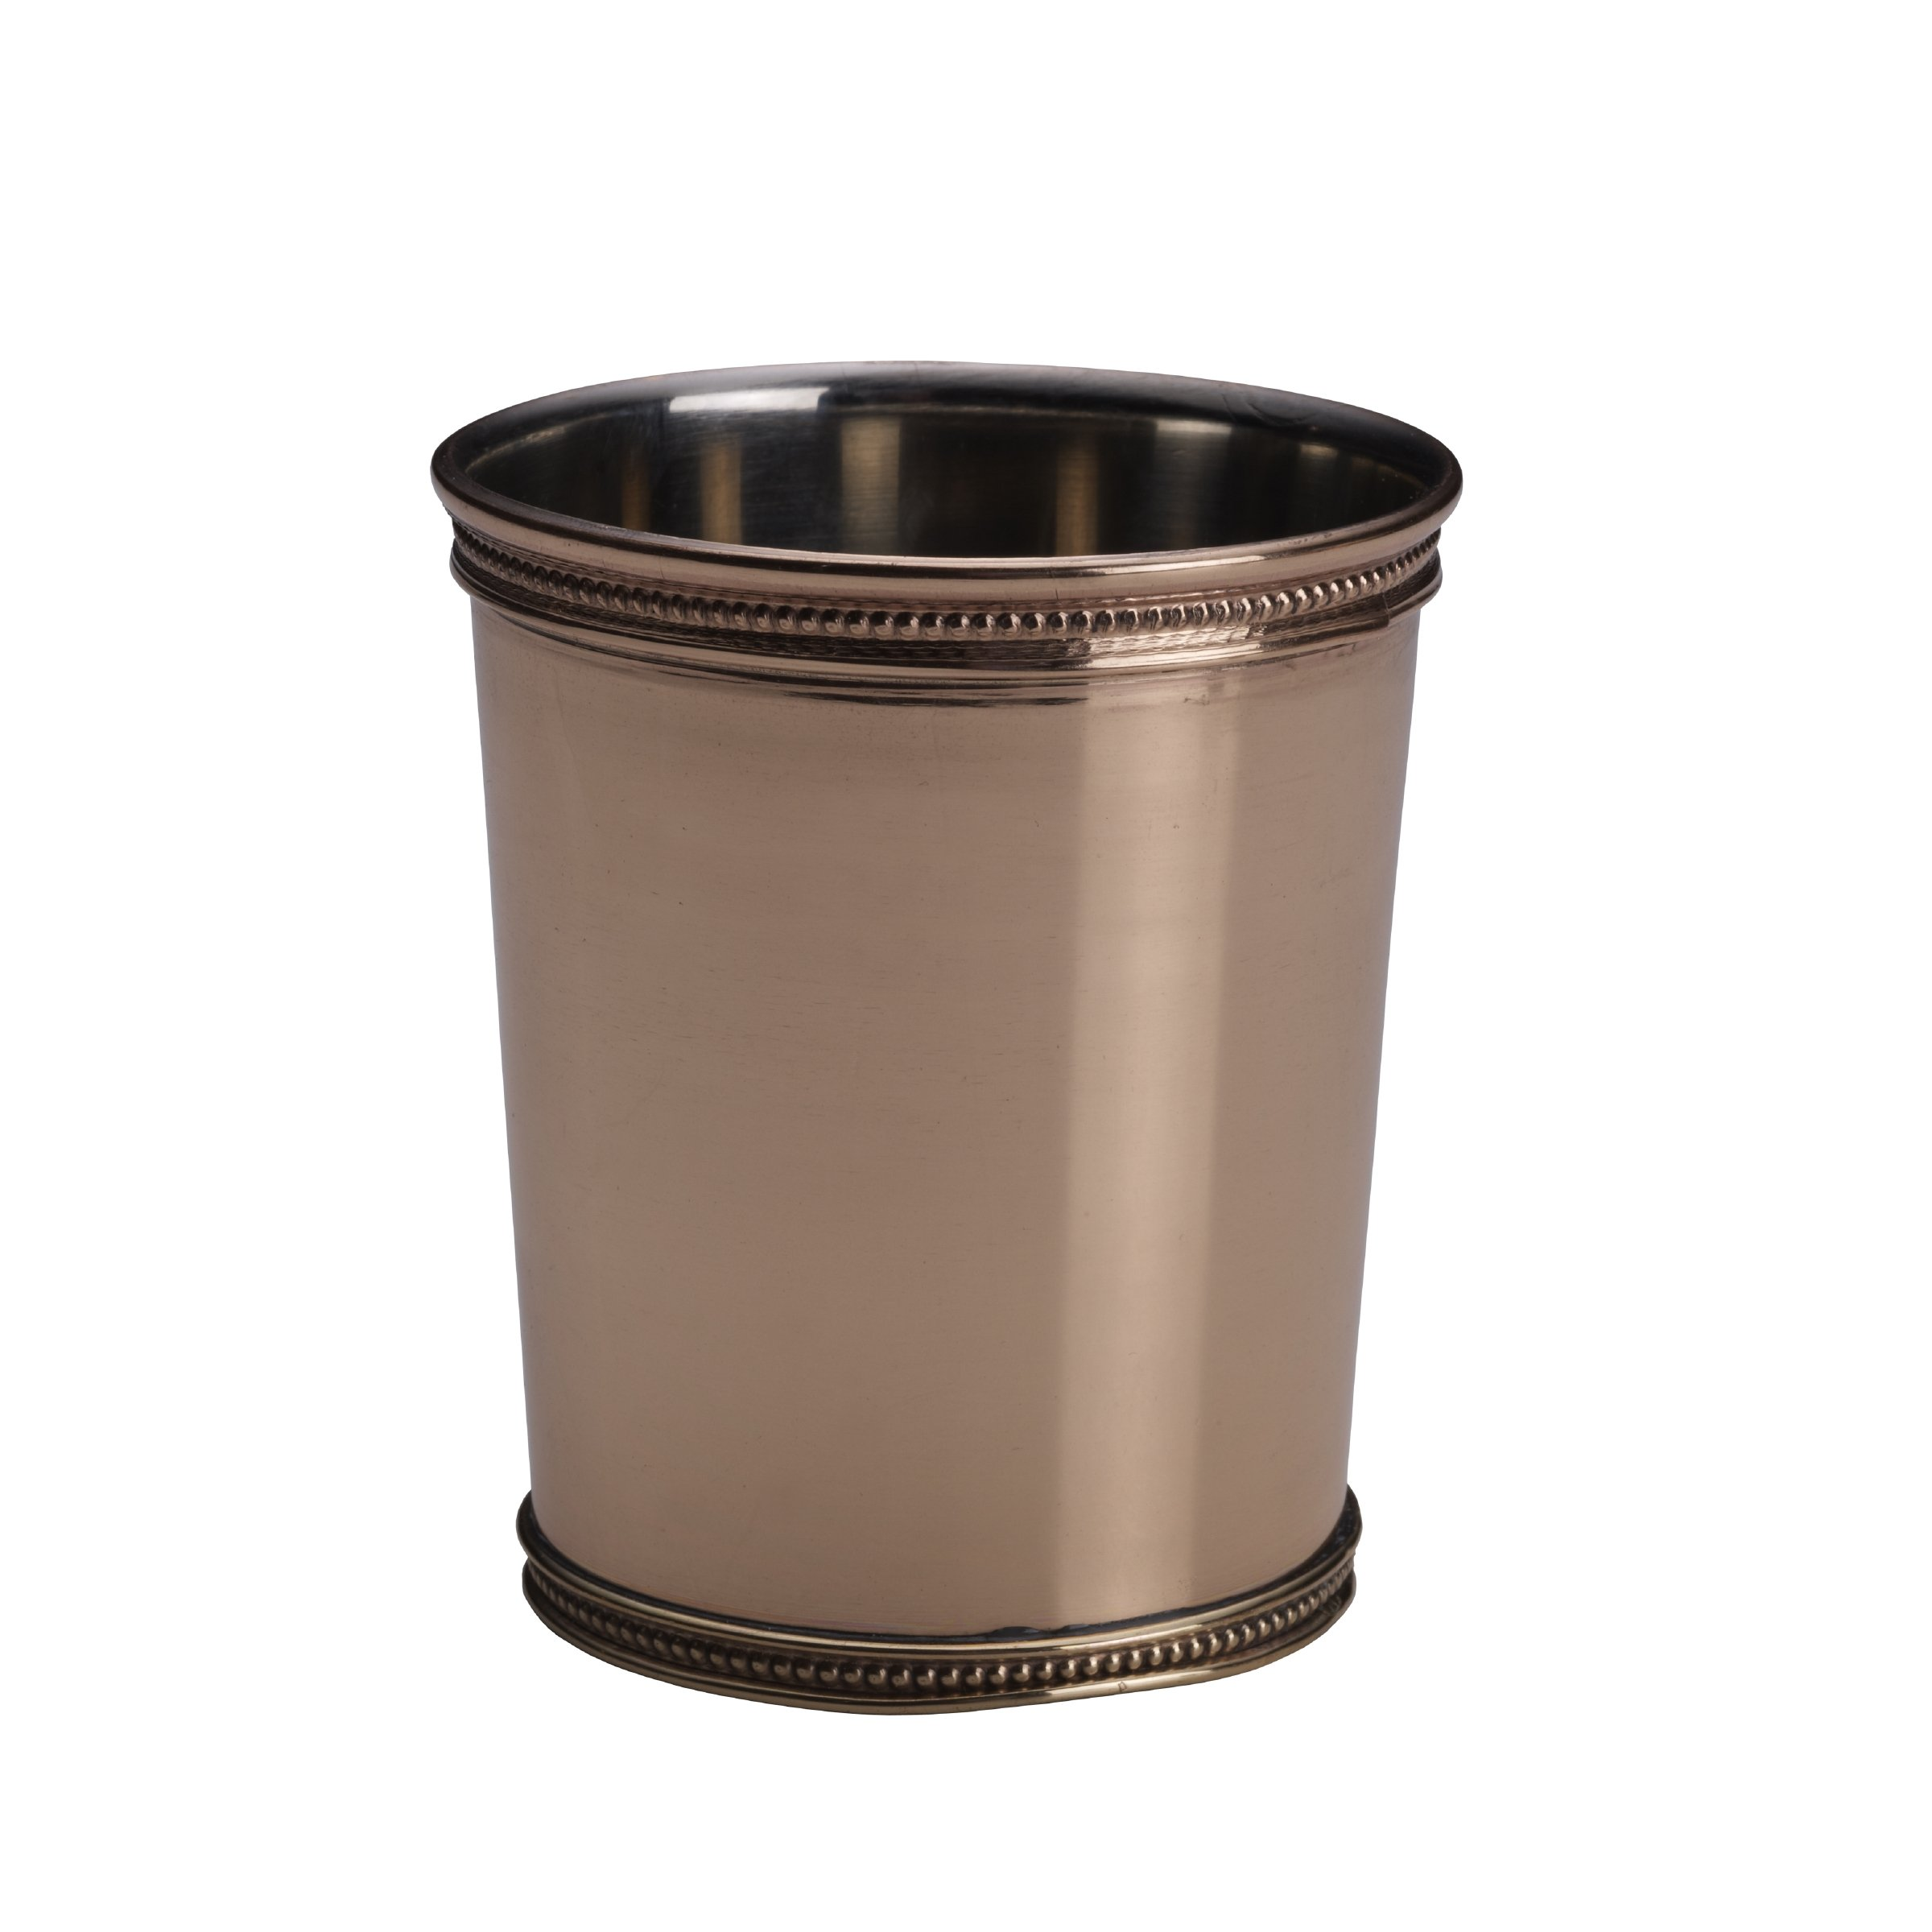 Mikasa Solid Copper Mint Julep Cup